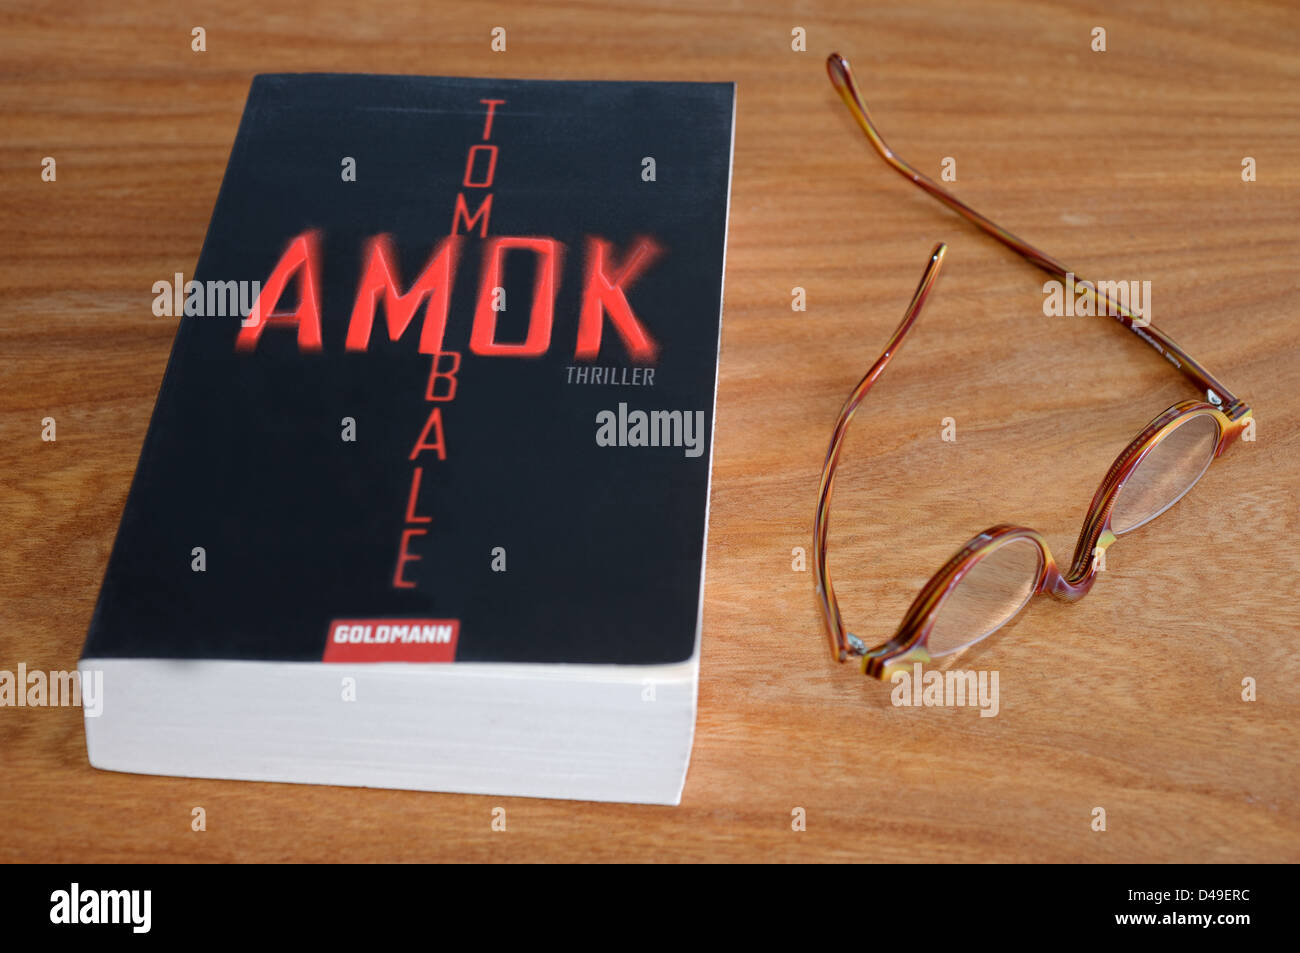 Tom Bale thriller AMOK published in Germany by Goldmann - Stock Image